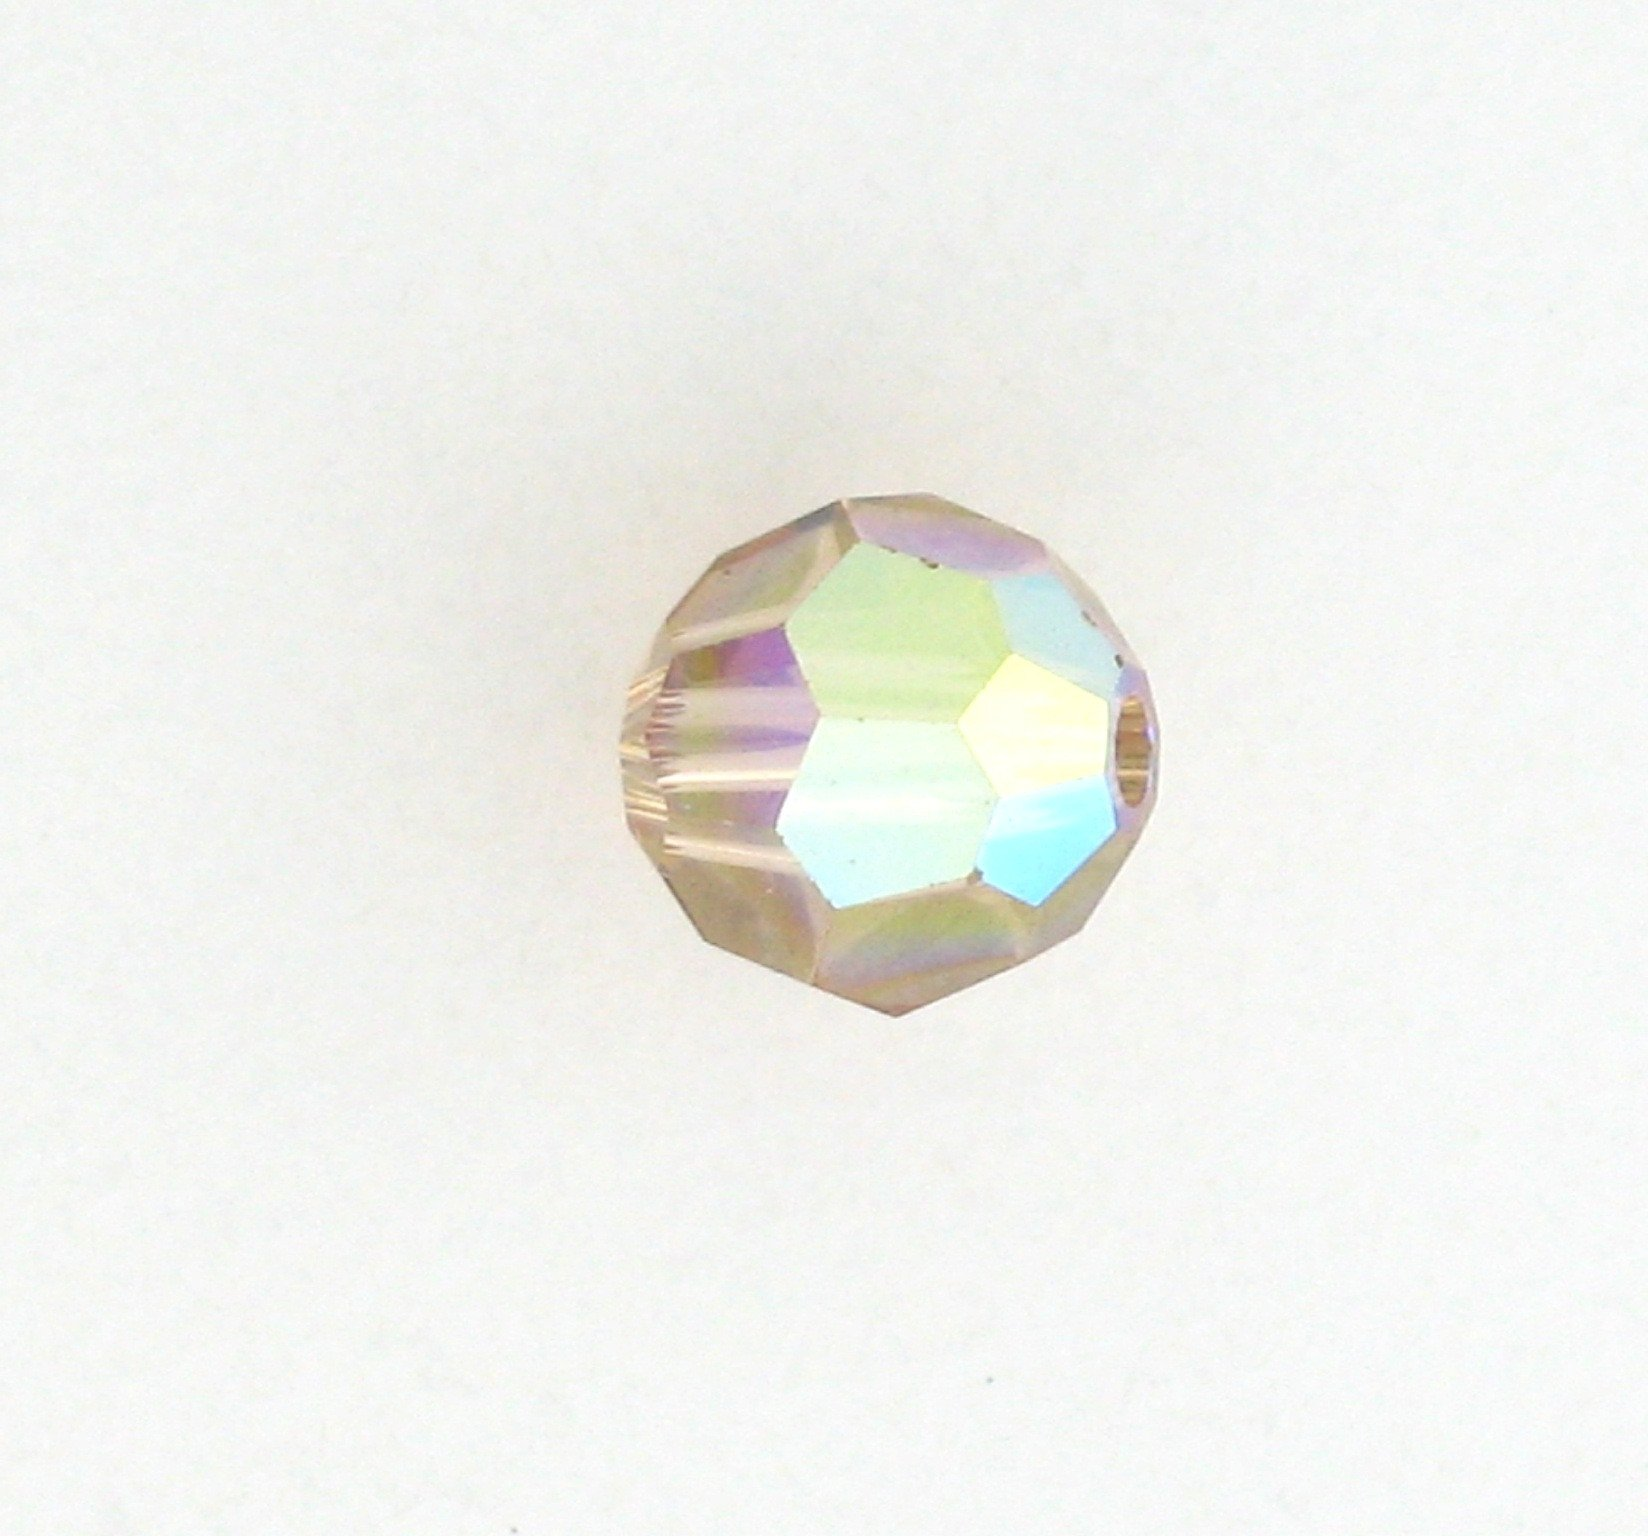 cf8ed74df 5000 - 4mm Swarovski Round Crystals - Light Colorado Topaz AB ...